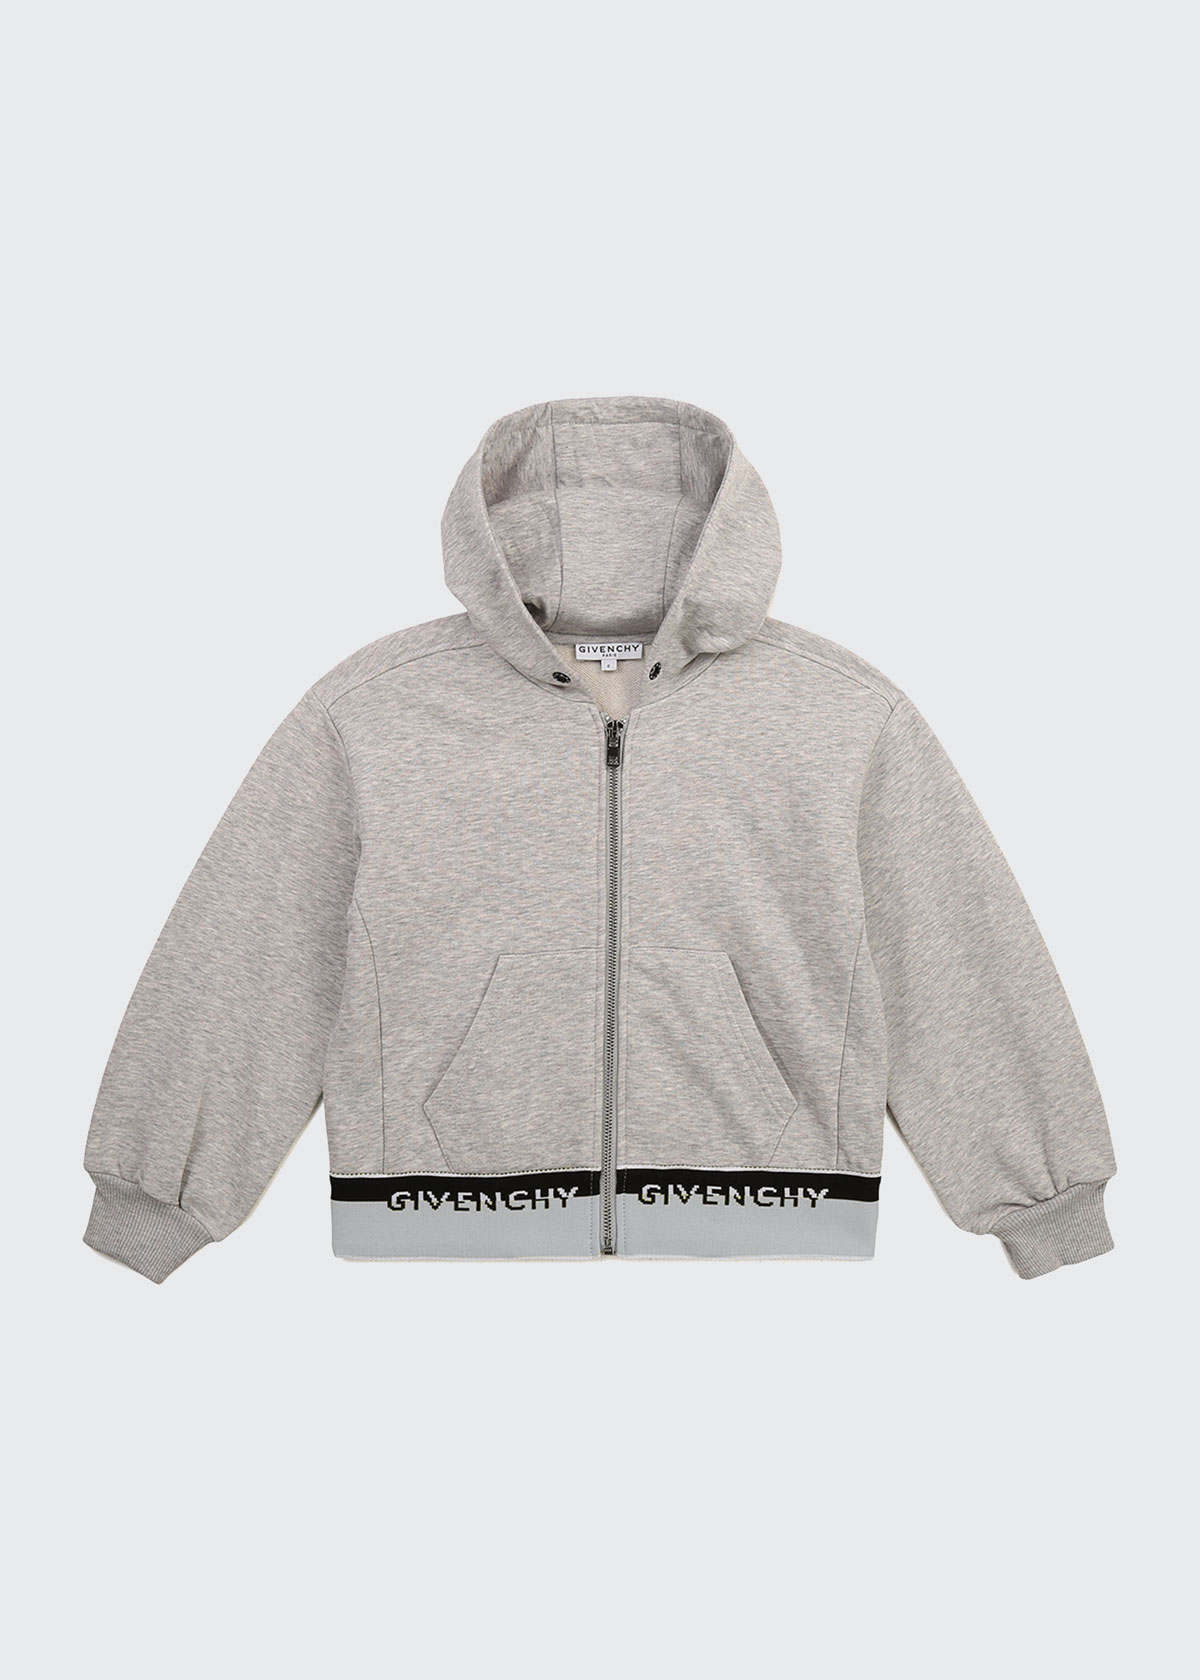 Givenchy BOY'S HOODED LOGO BAND ZIP-UP JACKET